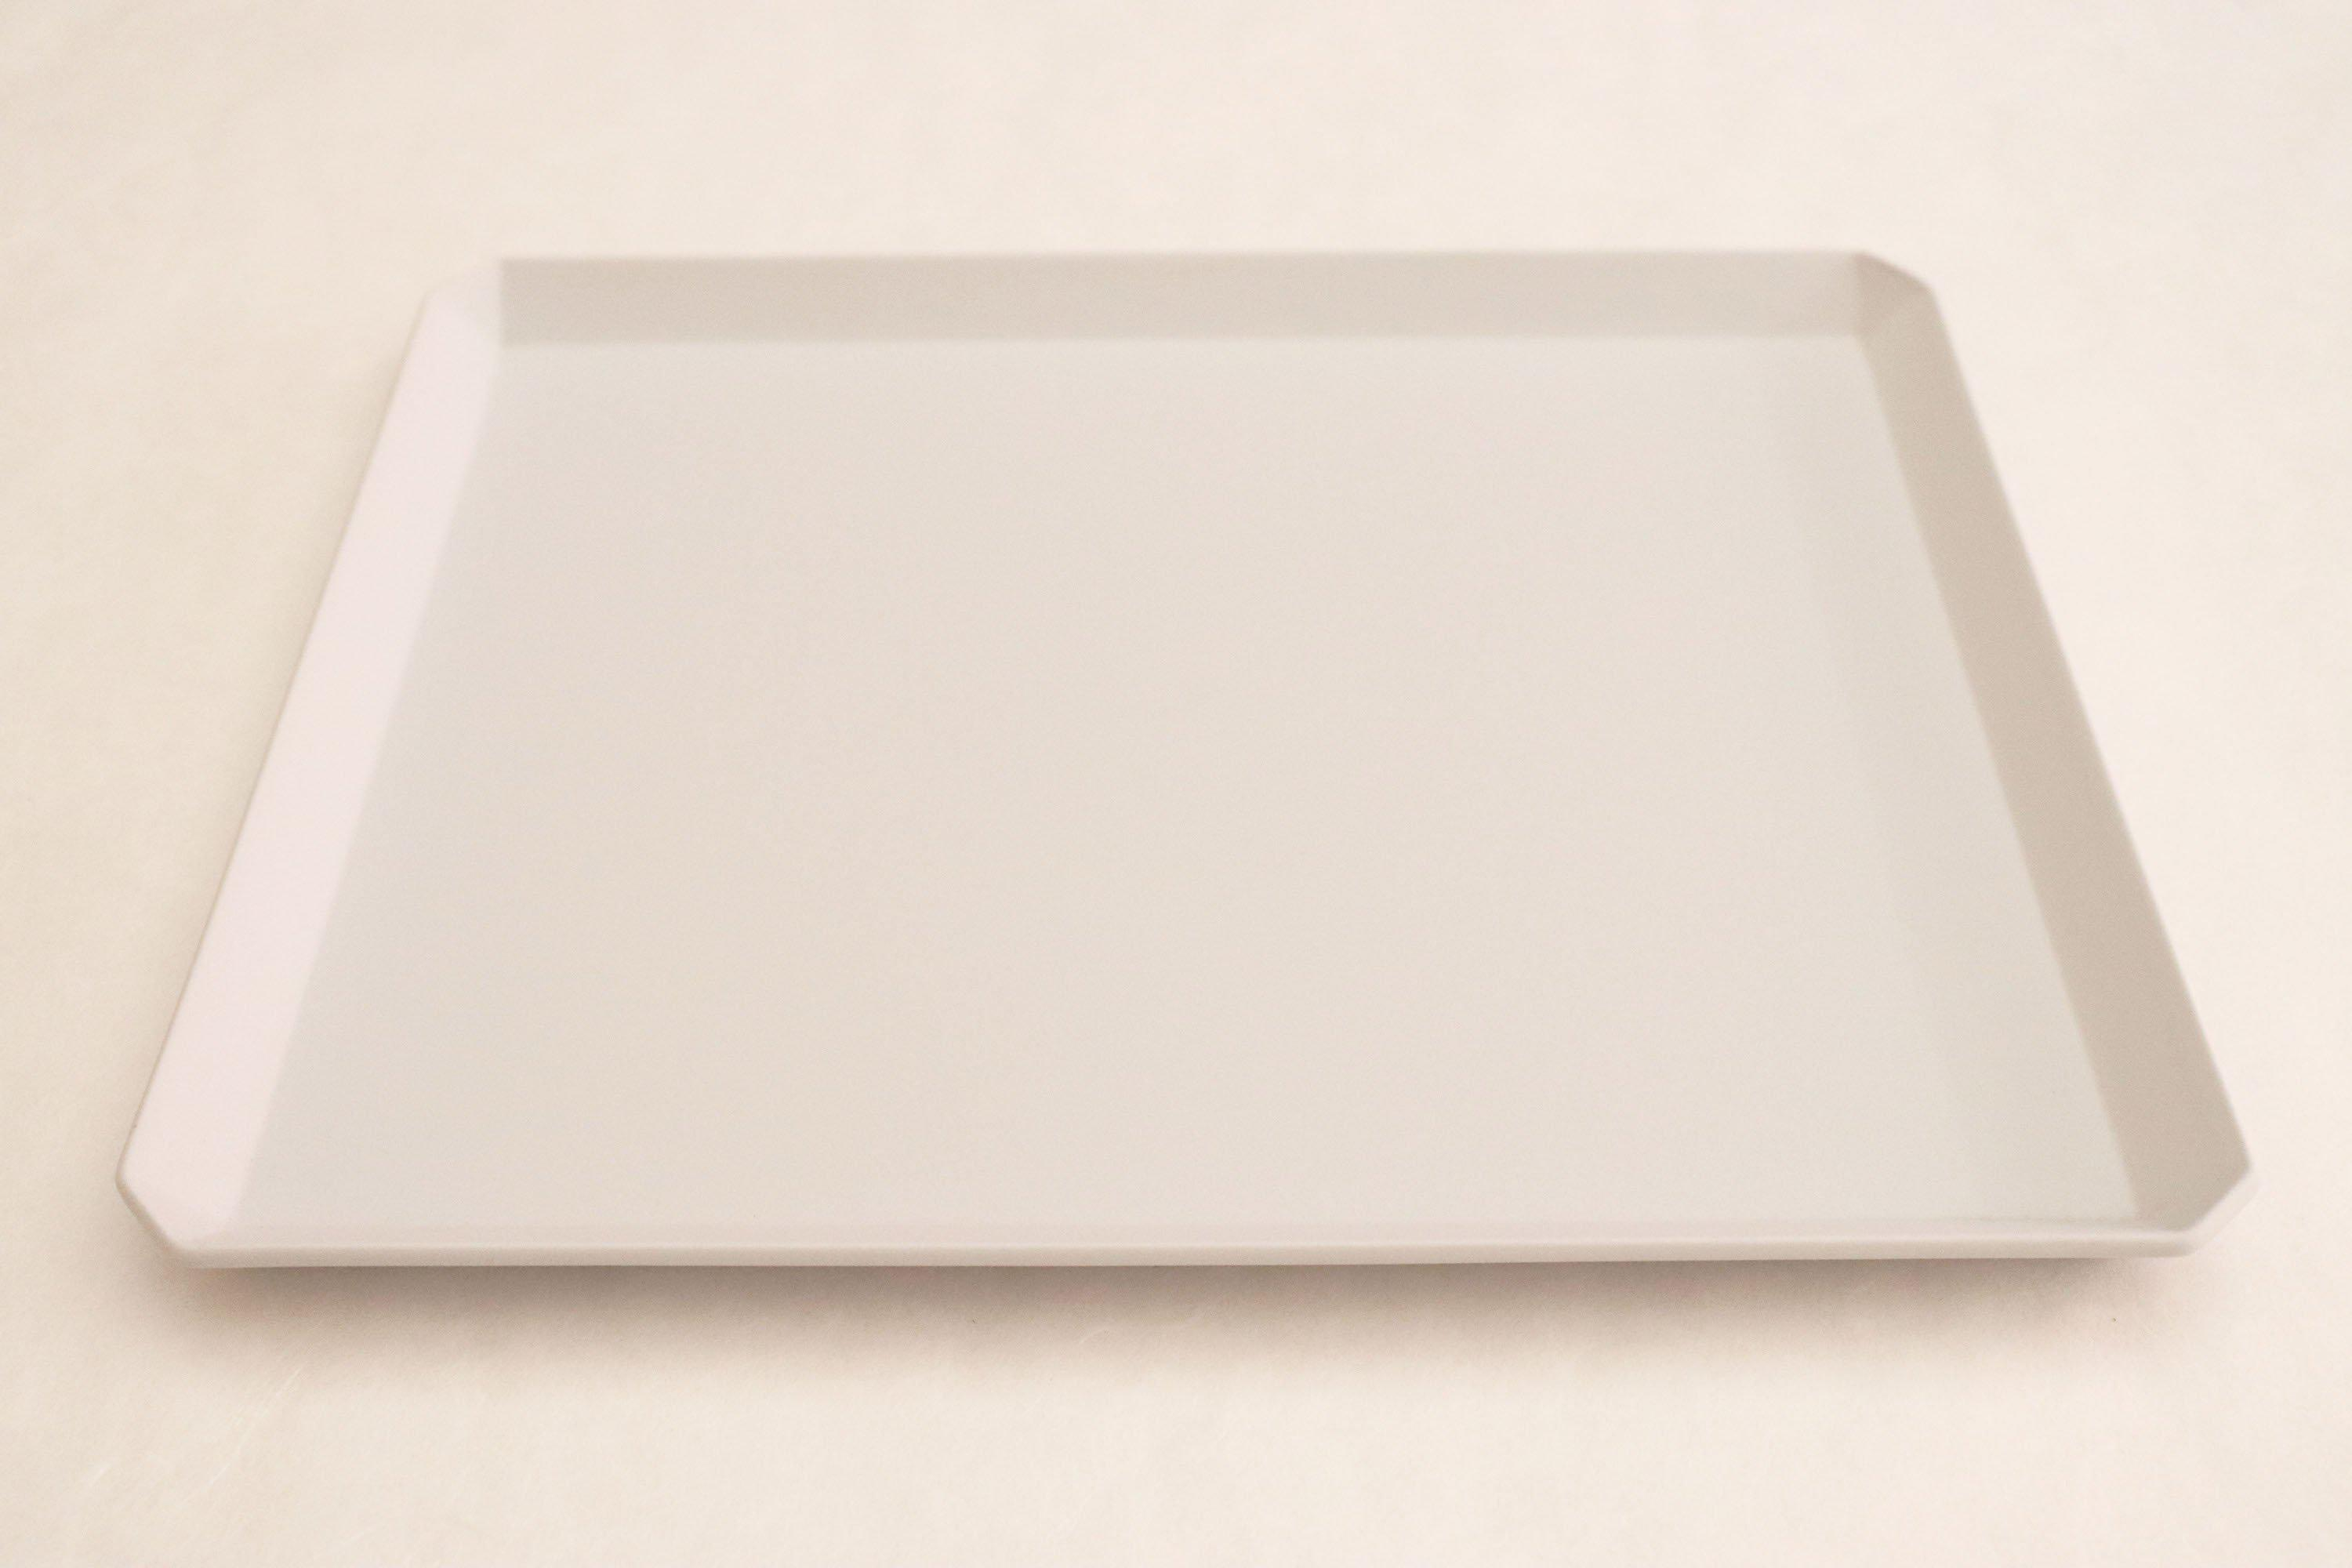 "TY""Standard"" Square Plate plain Gray 270"